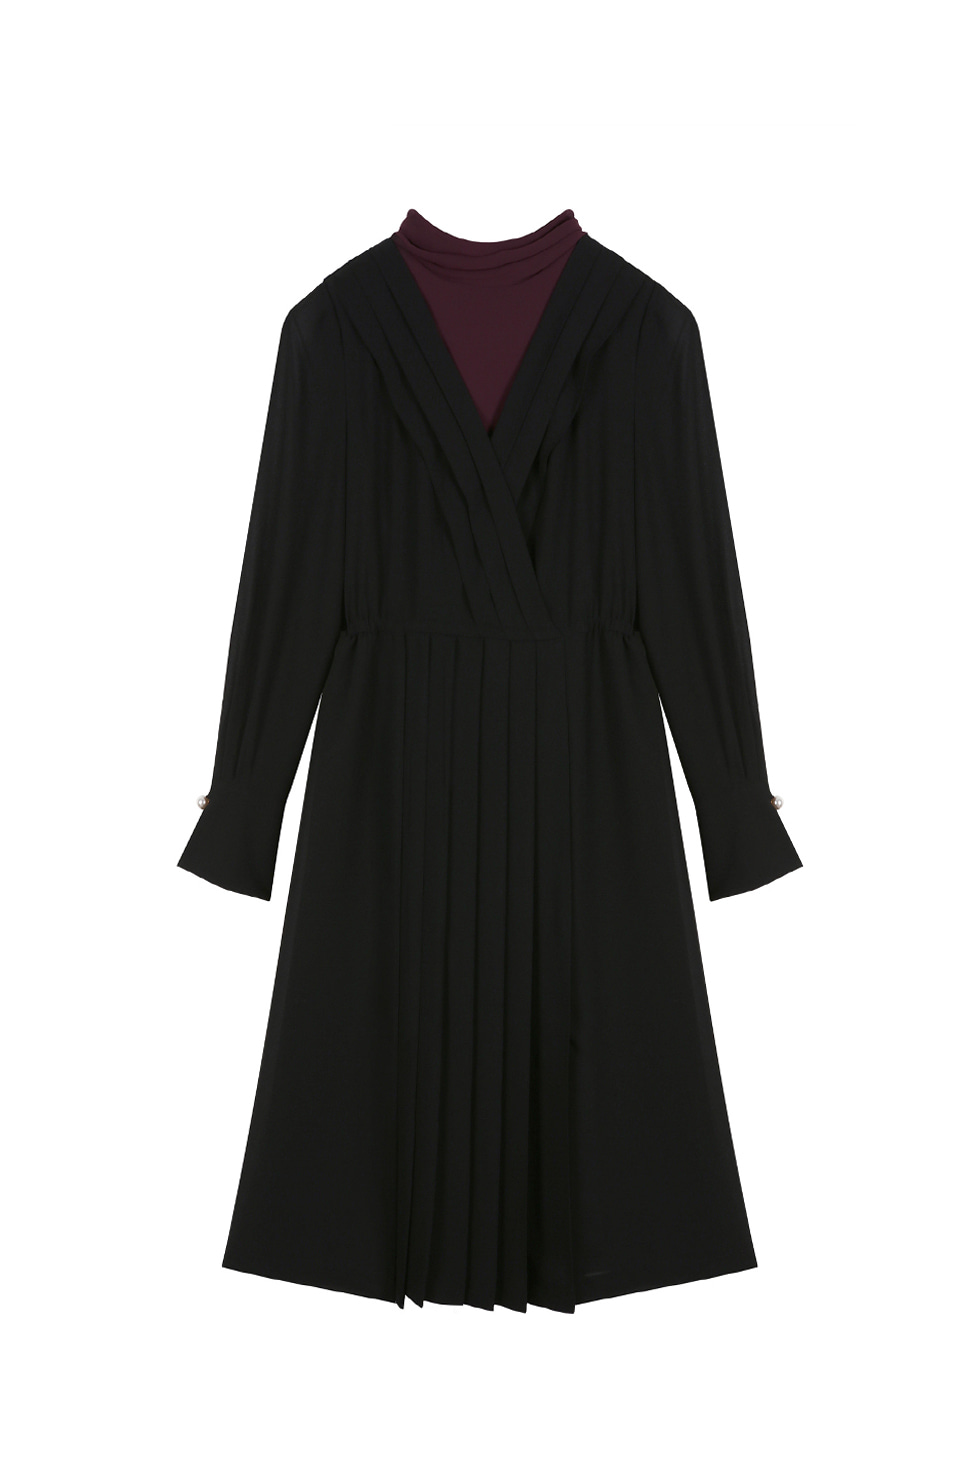 SCARF PLEATS DRESS - BLACK